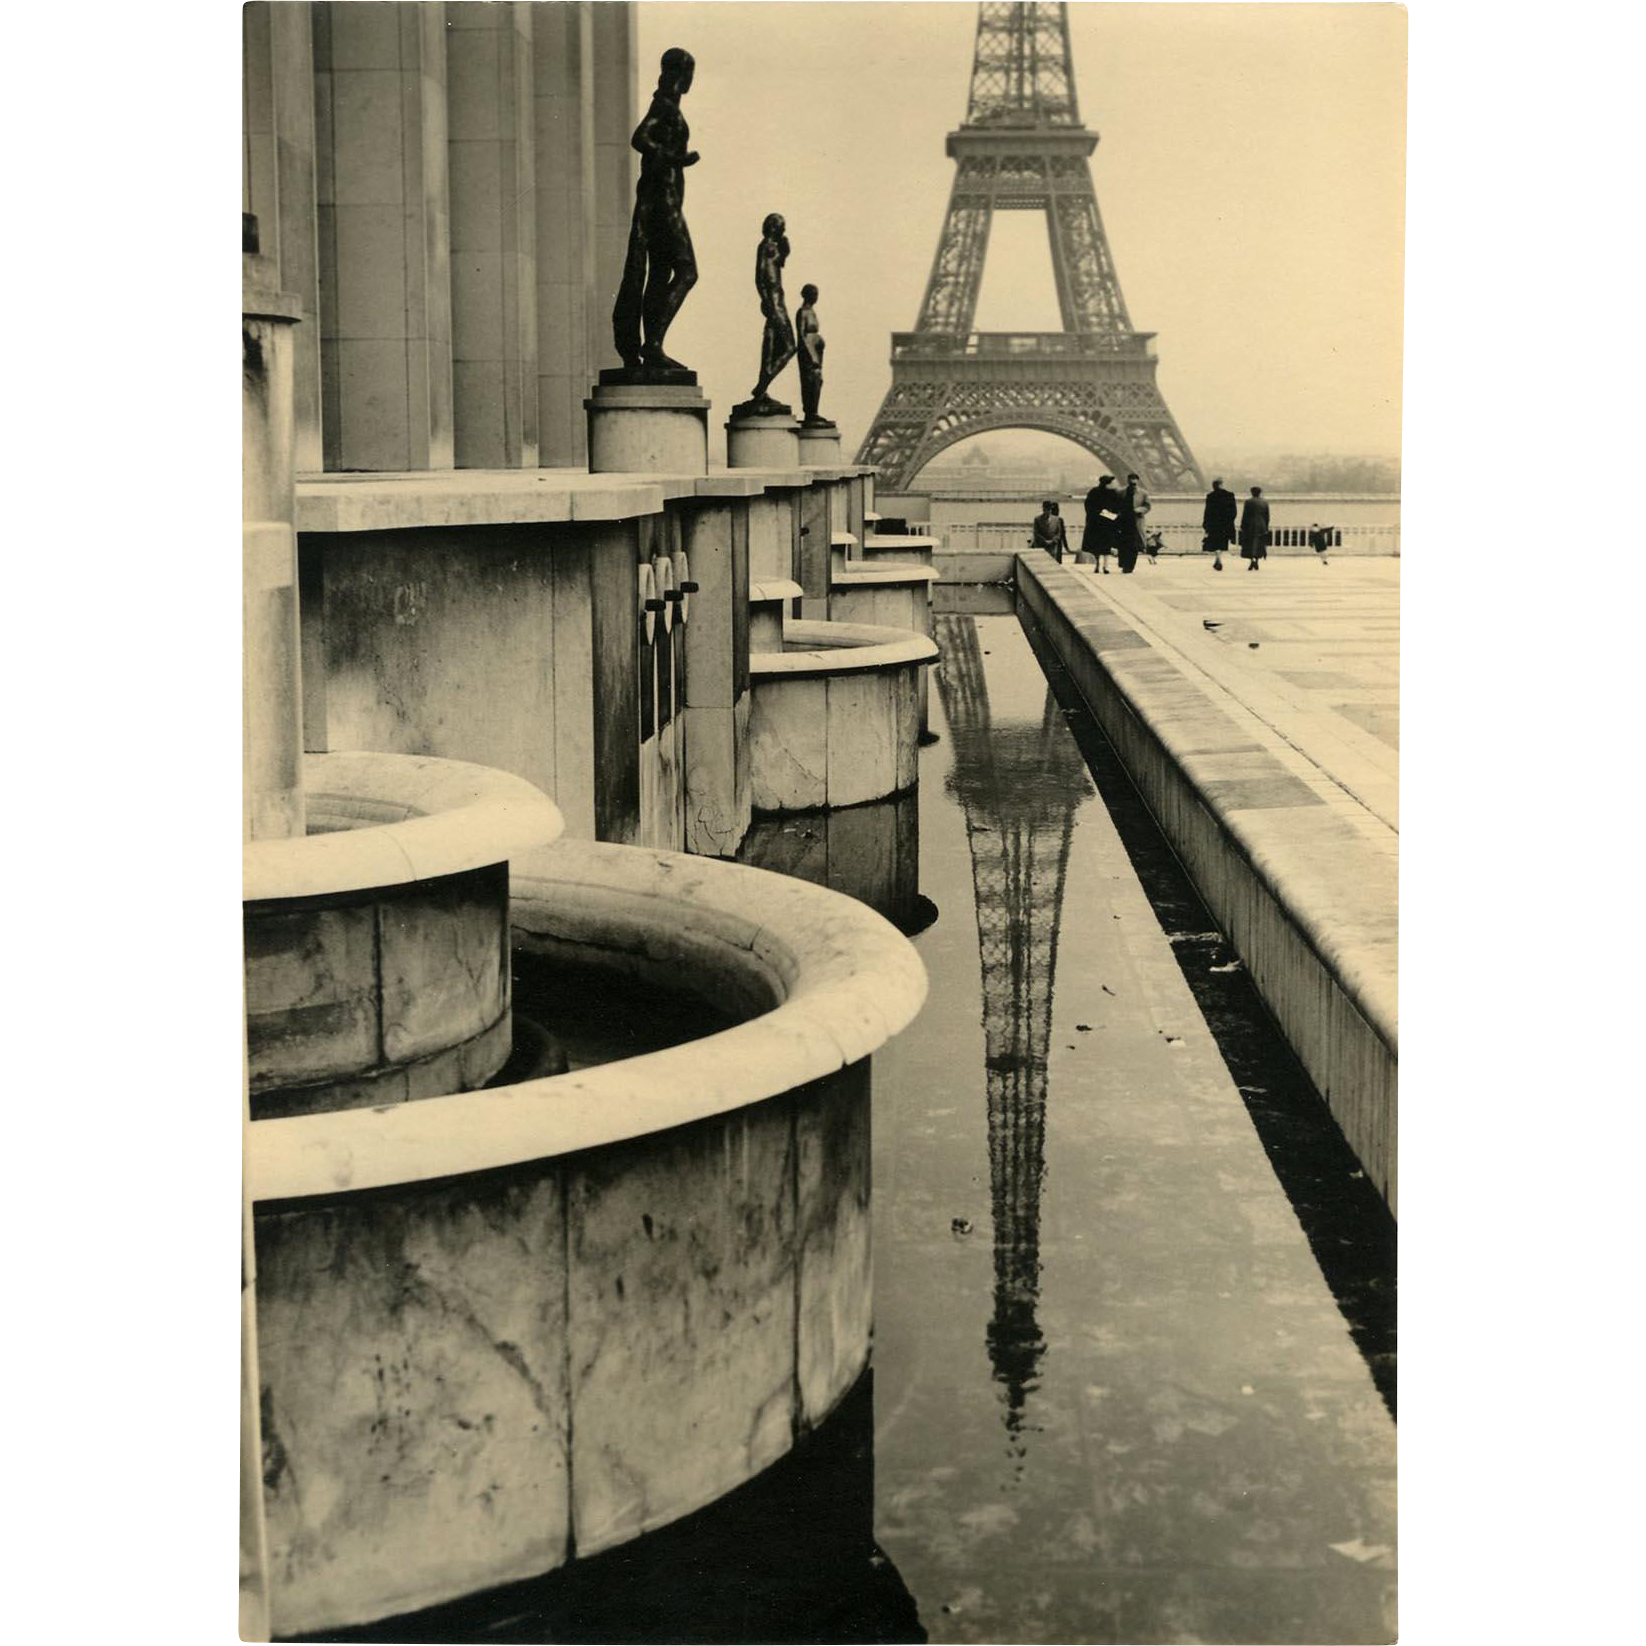 Retro c1950s Photograph of the Eiffel Tower Paris by Jean Arty